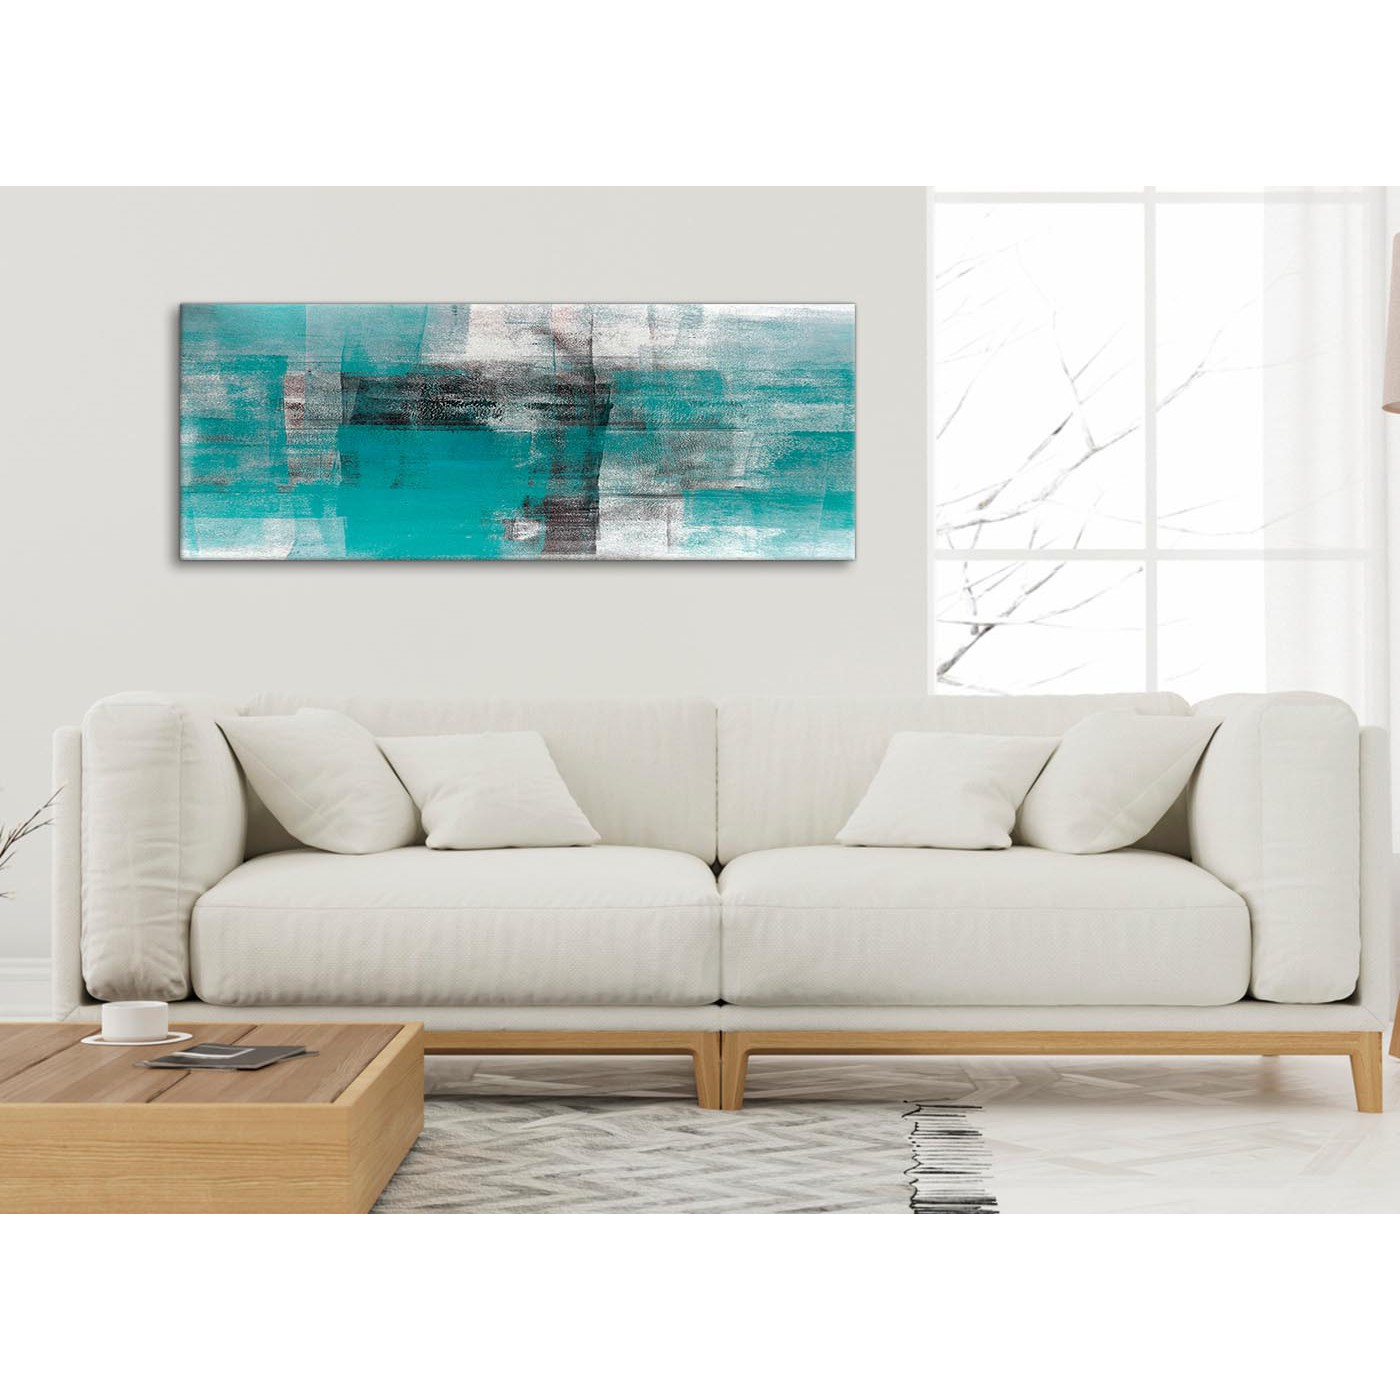 Teal Black White Painting Living Room Canvas Wall Art